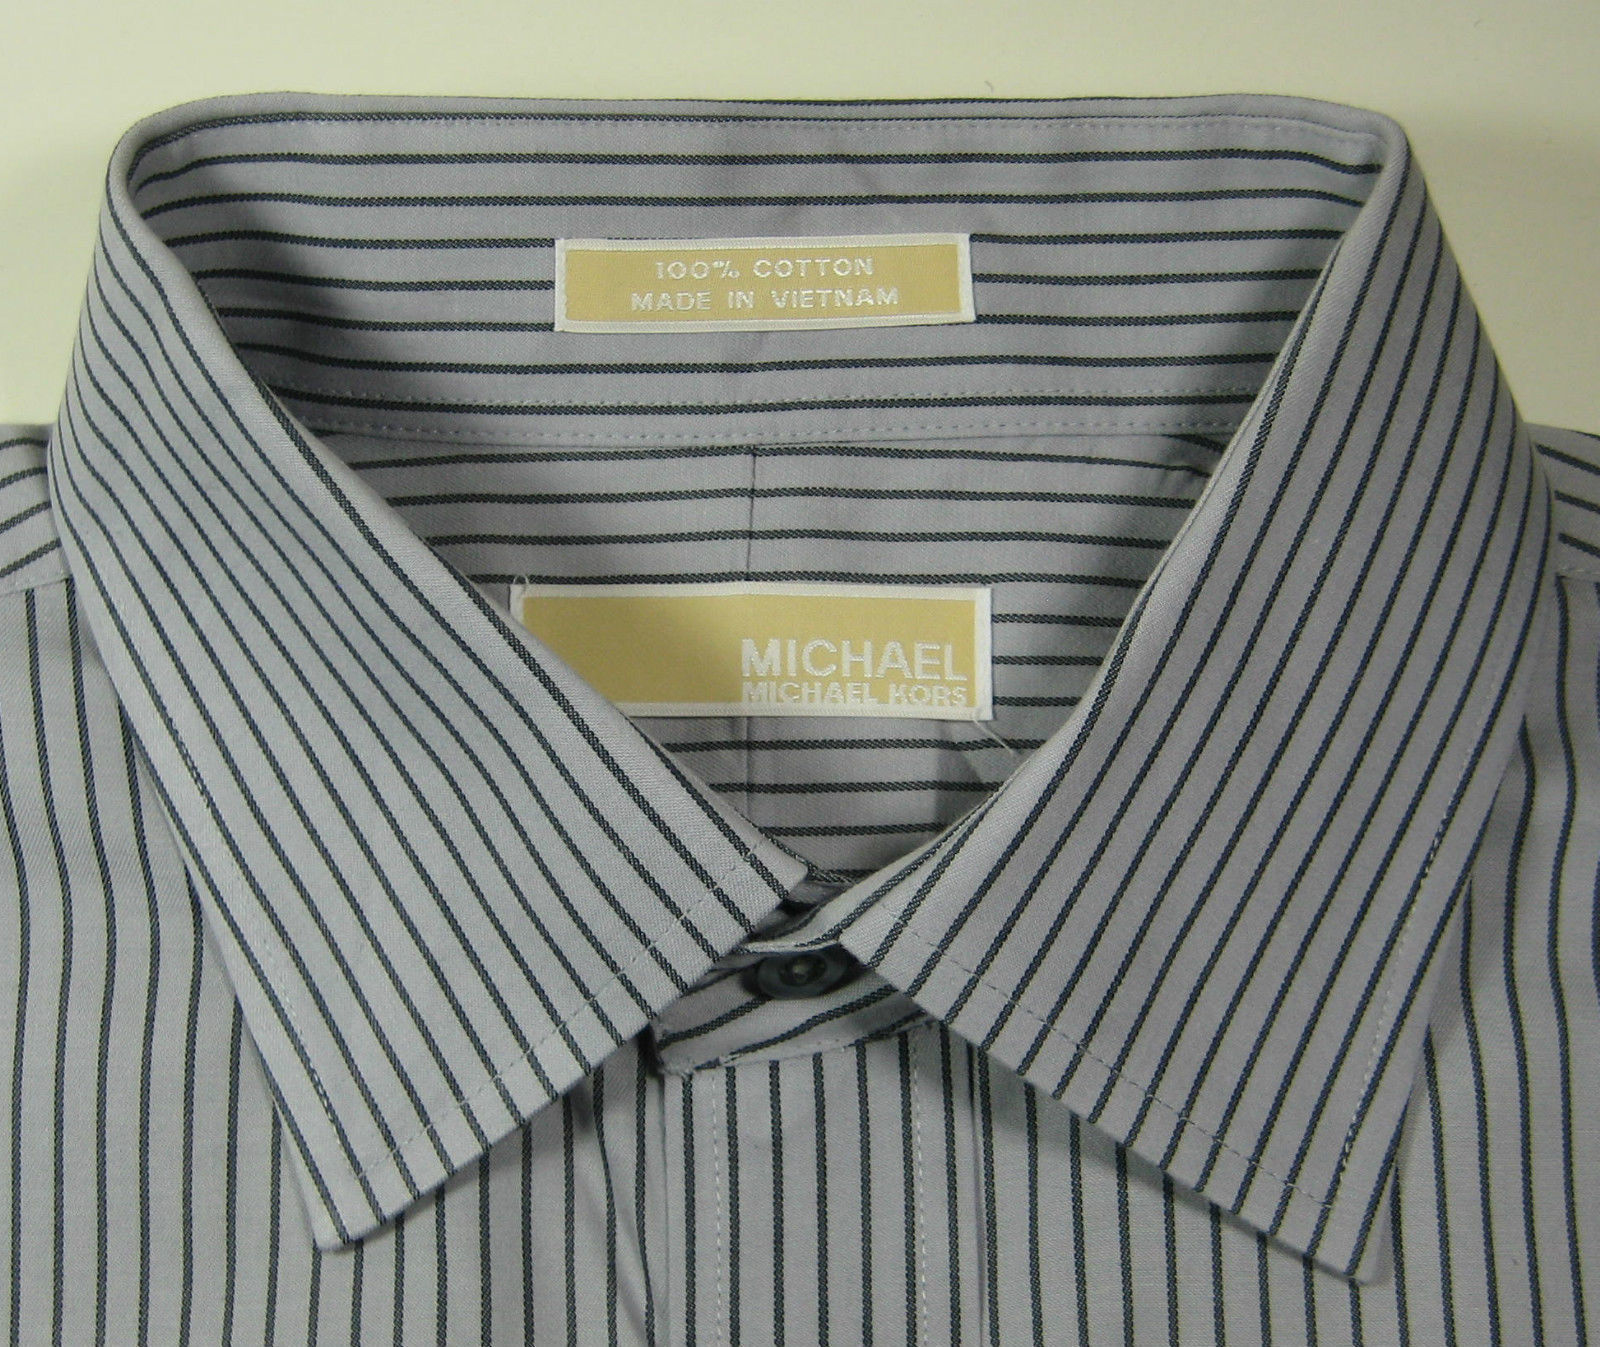 MICHAEL KORS XL 17 x 34/35 Gray Black Stripe Dress Shirt Excellent